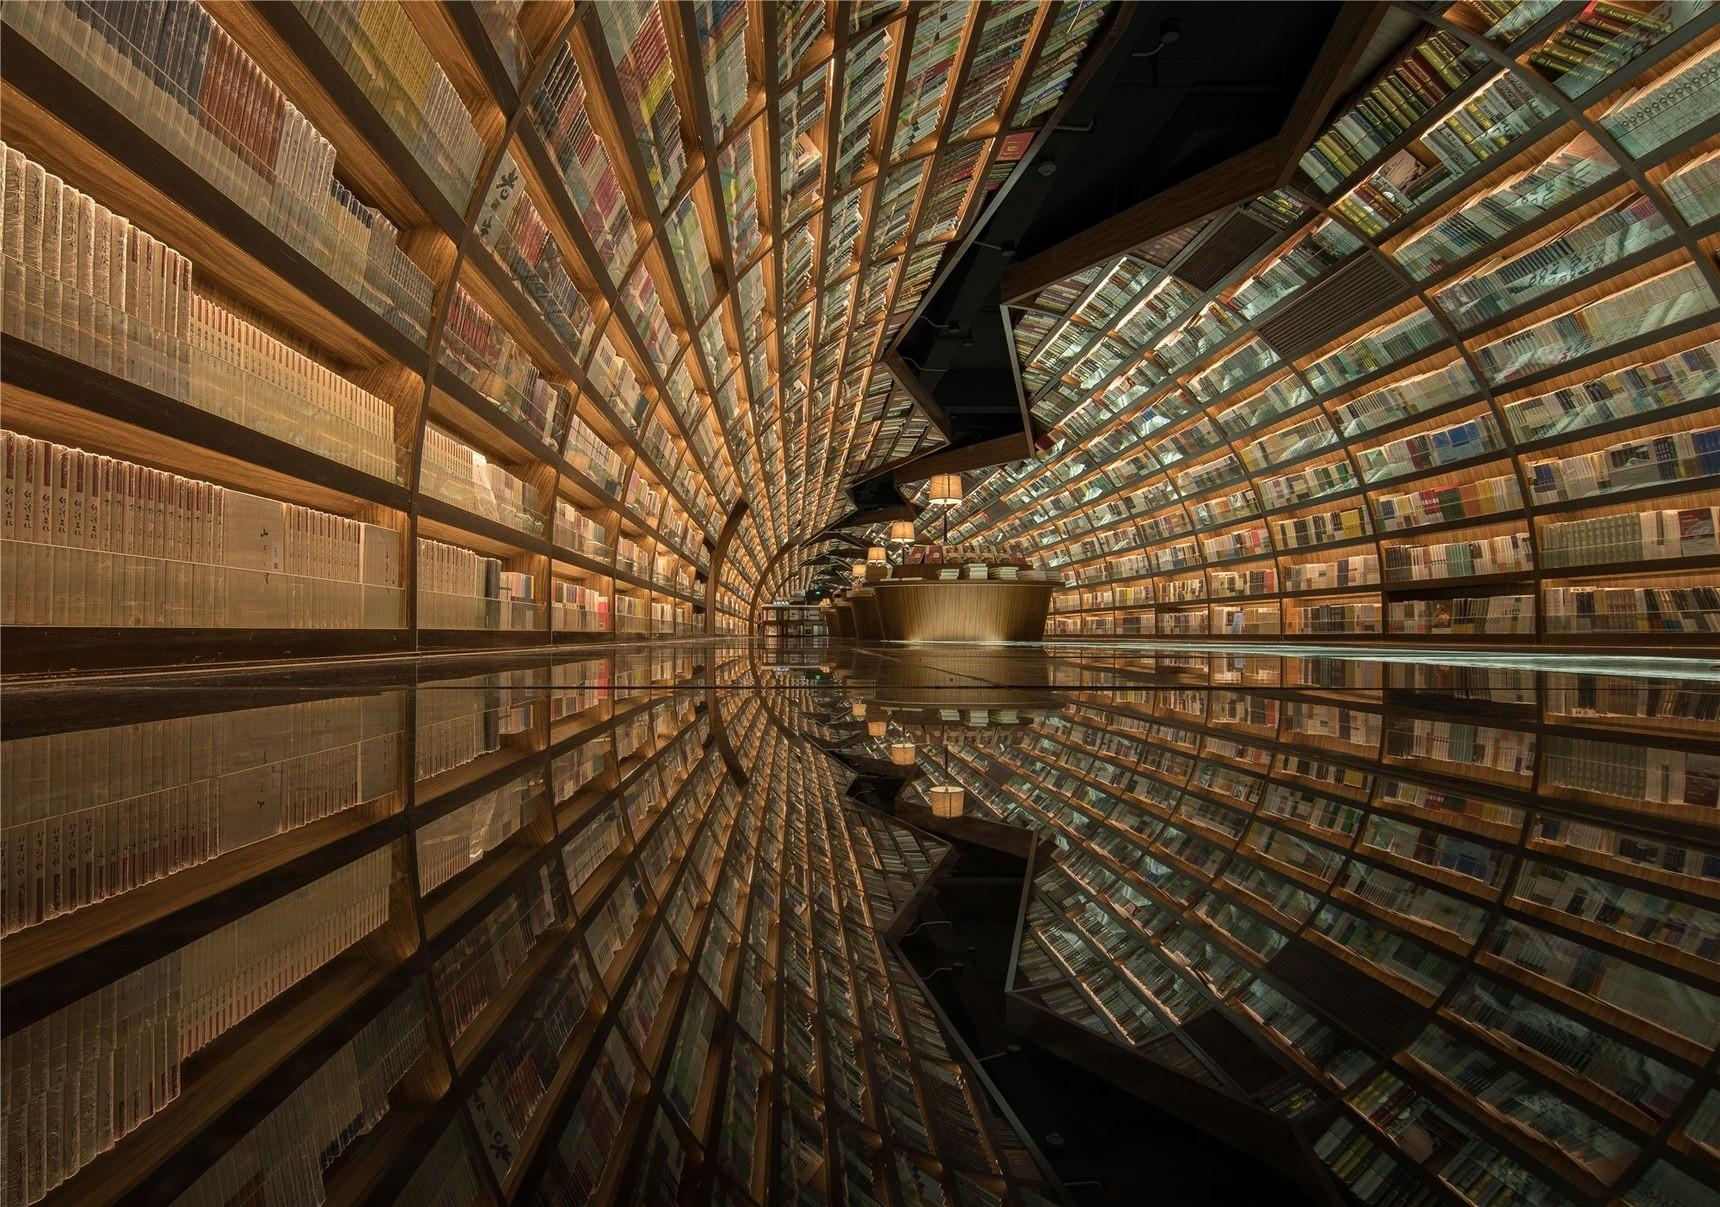 Settle Into Most Beautiful Libraries Earth